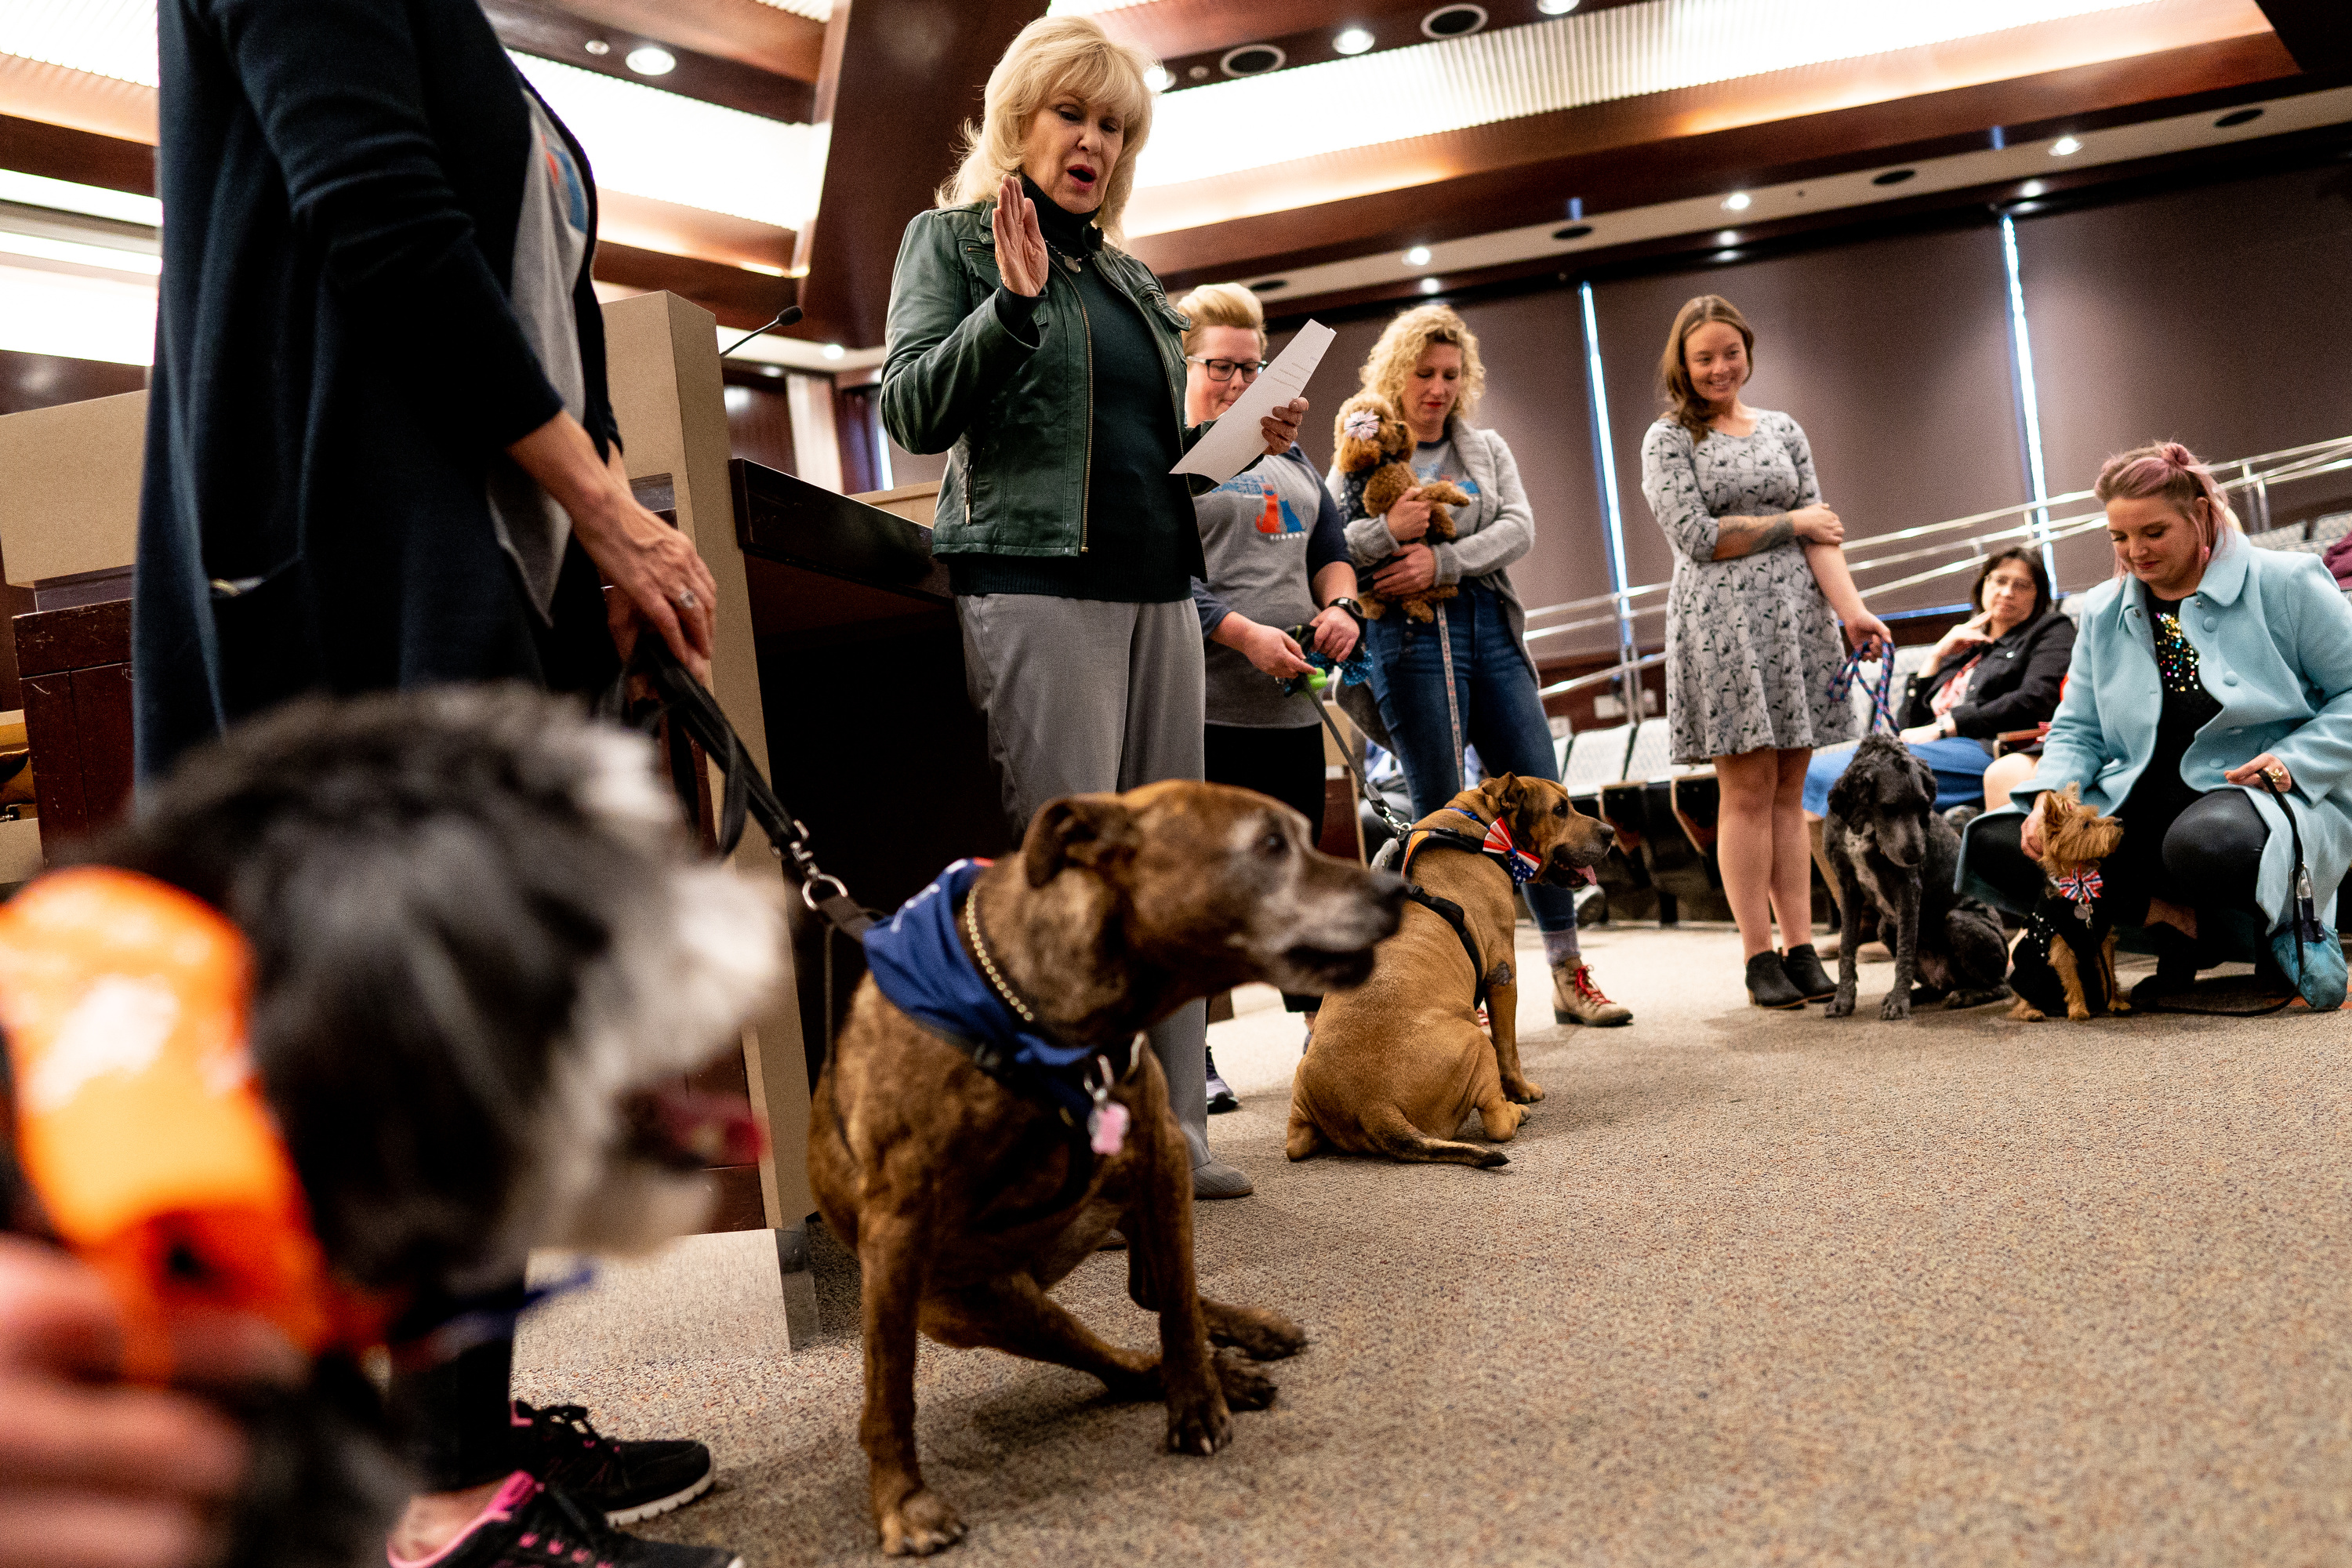 Salt Lake County Clerk Sherry Swensen swears in the nine-member PAWlitical council at the Salt Lake County Government Center in Salt Lake City on Tuesday, Dec. 10, 2019.